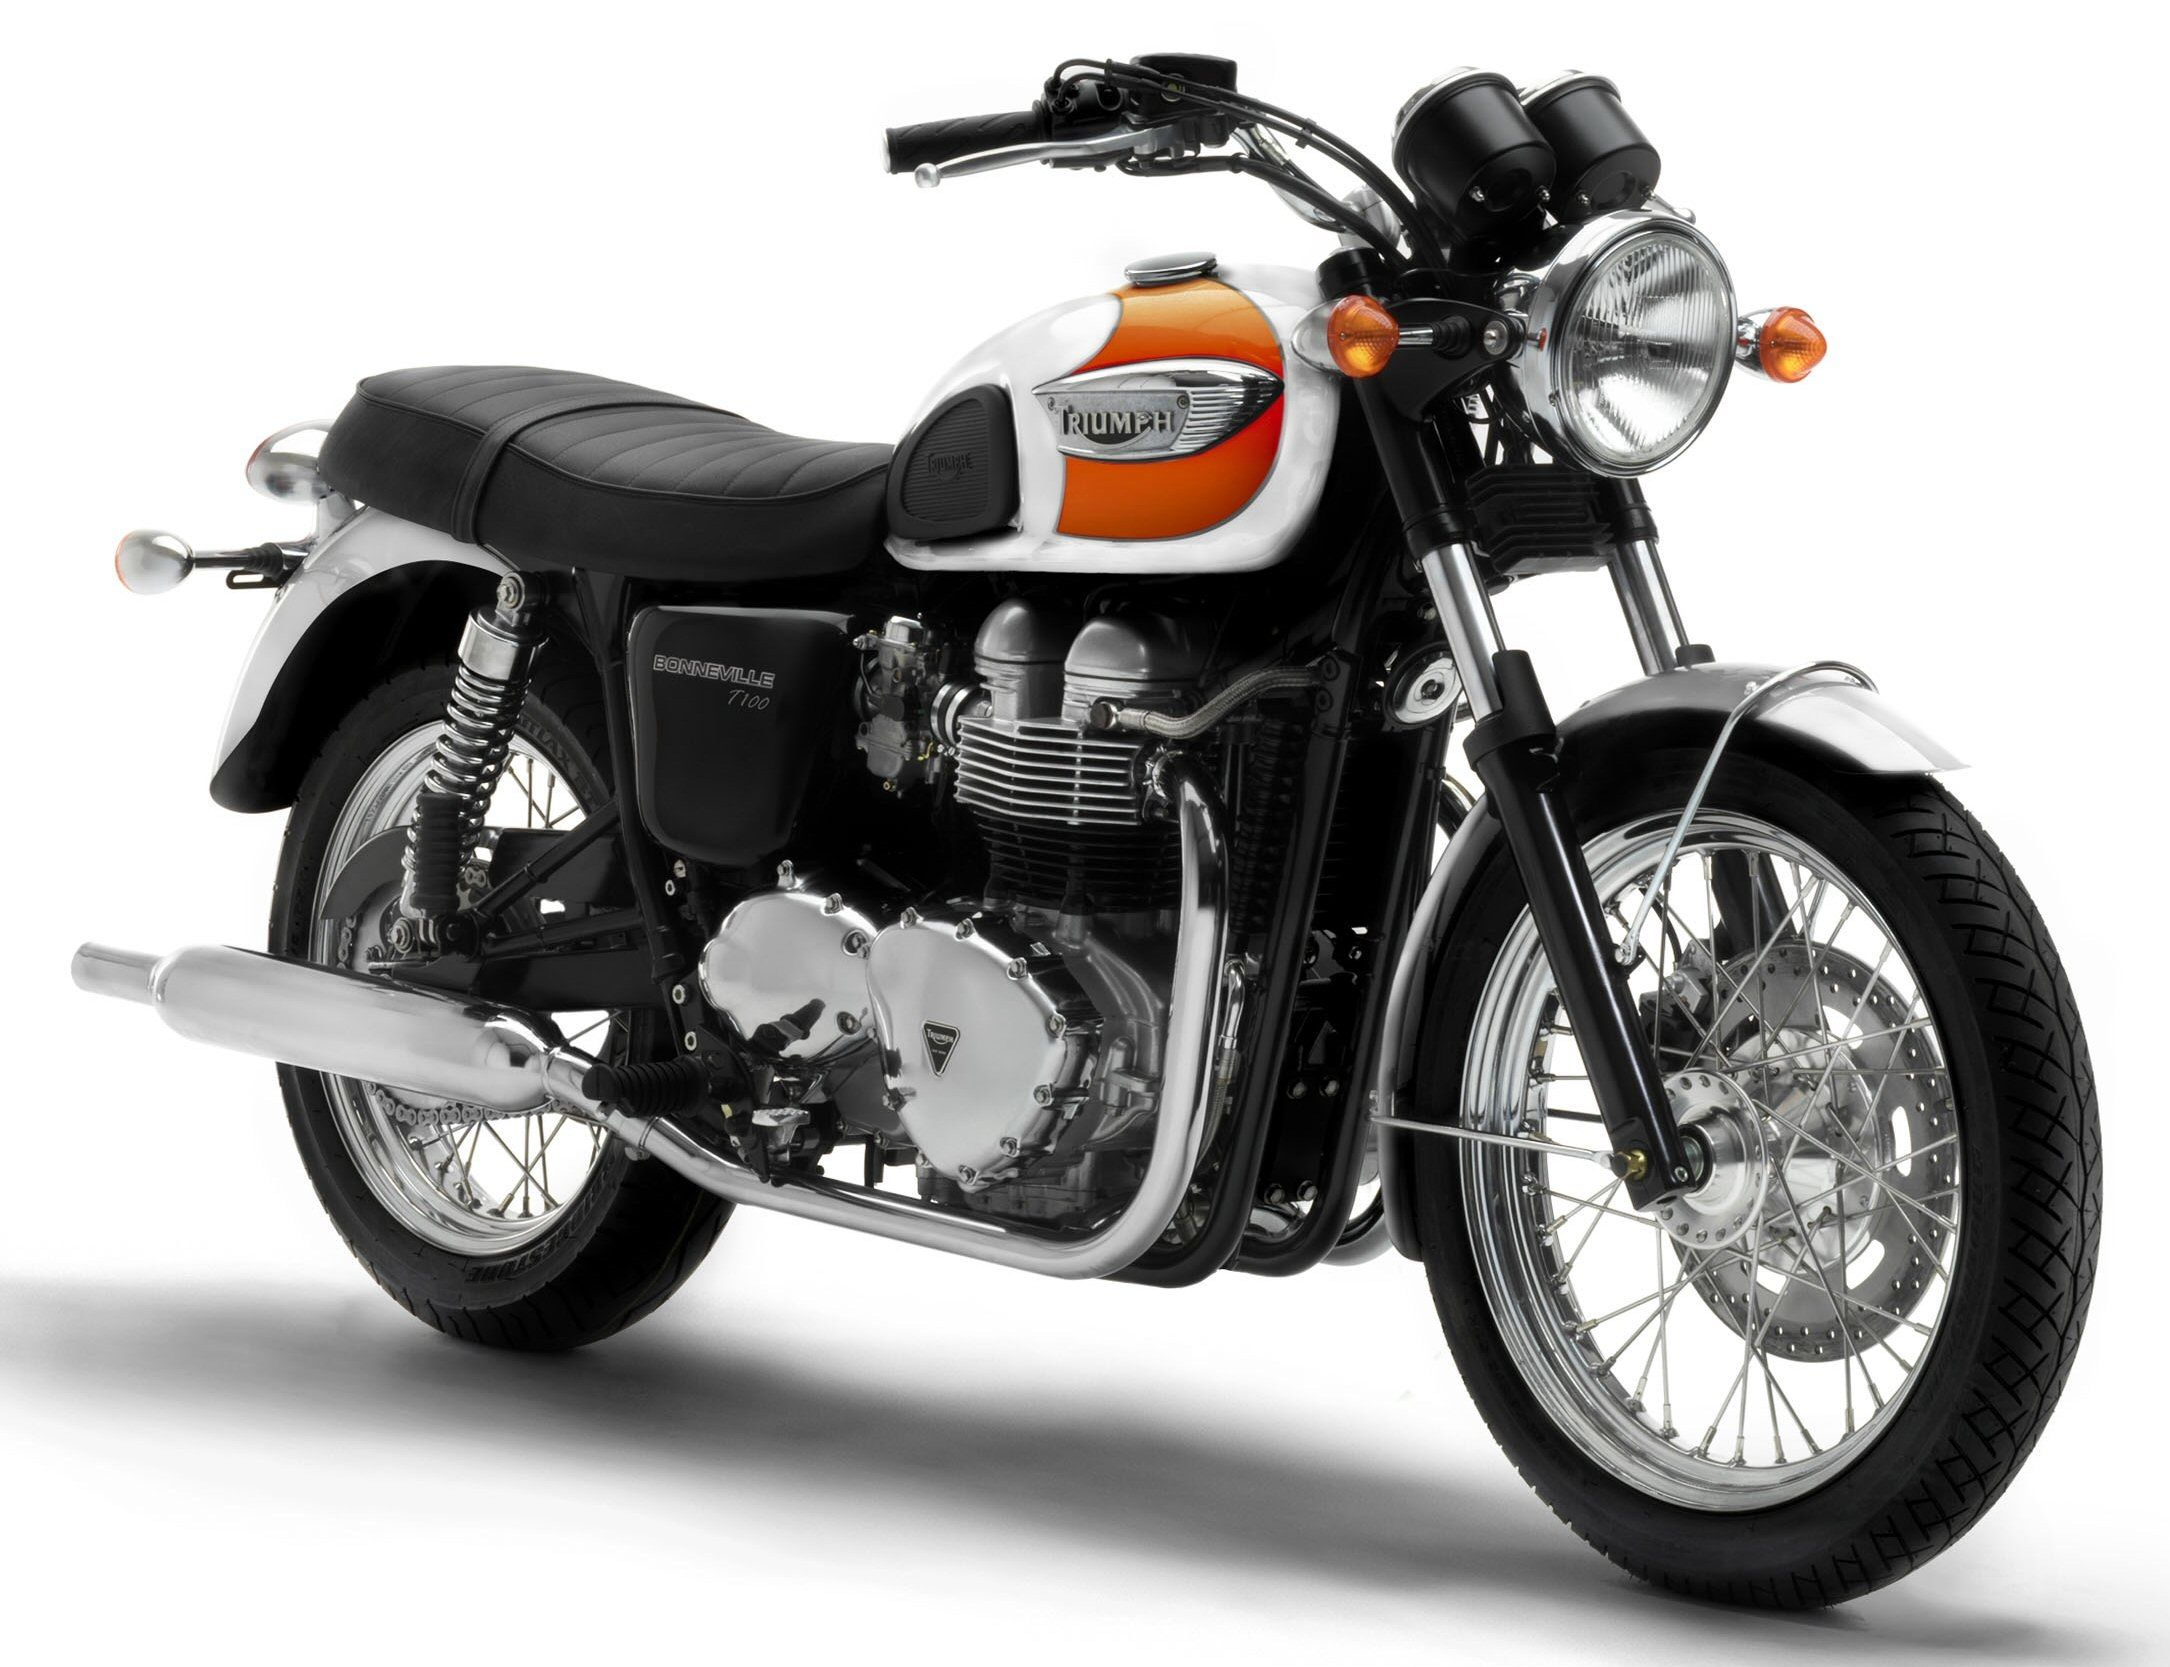 Triumph Bonneville Mission Impossible Fallout